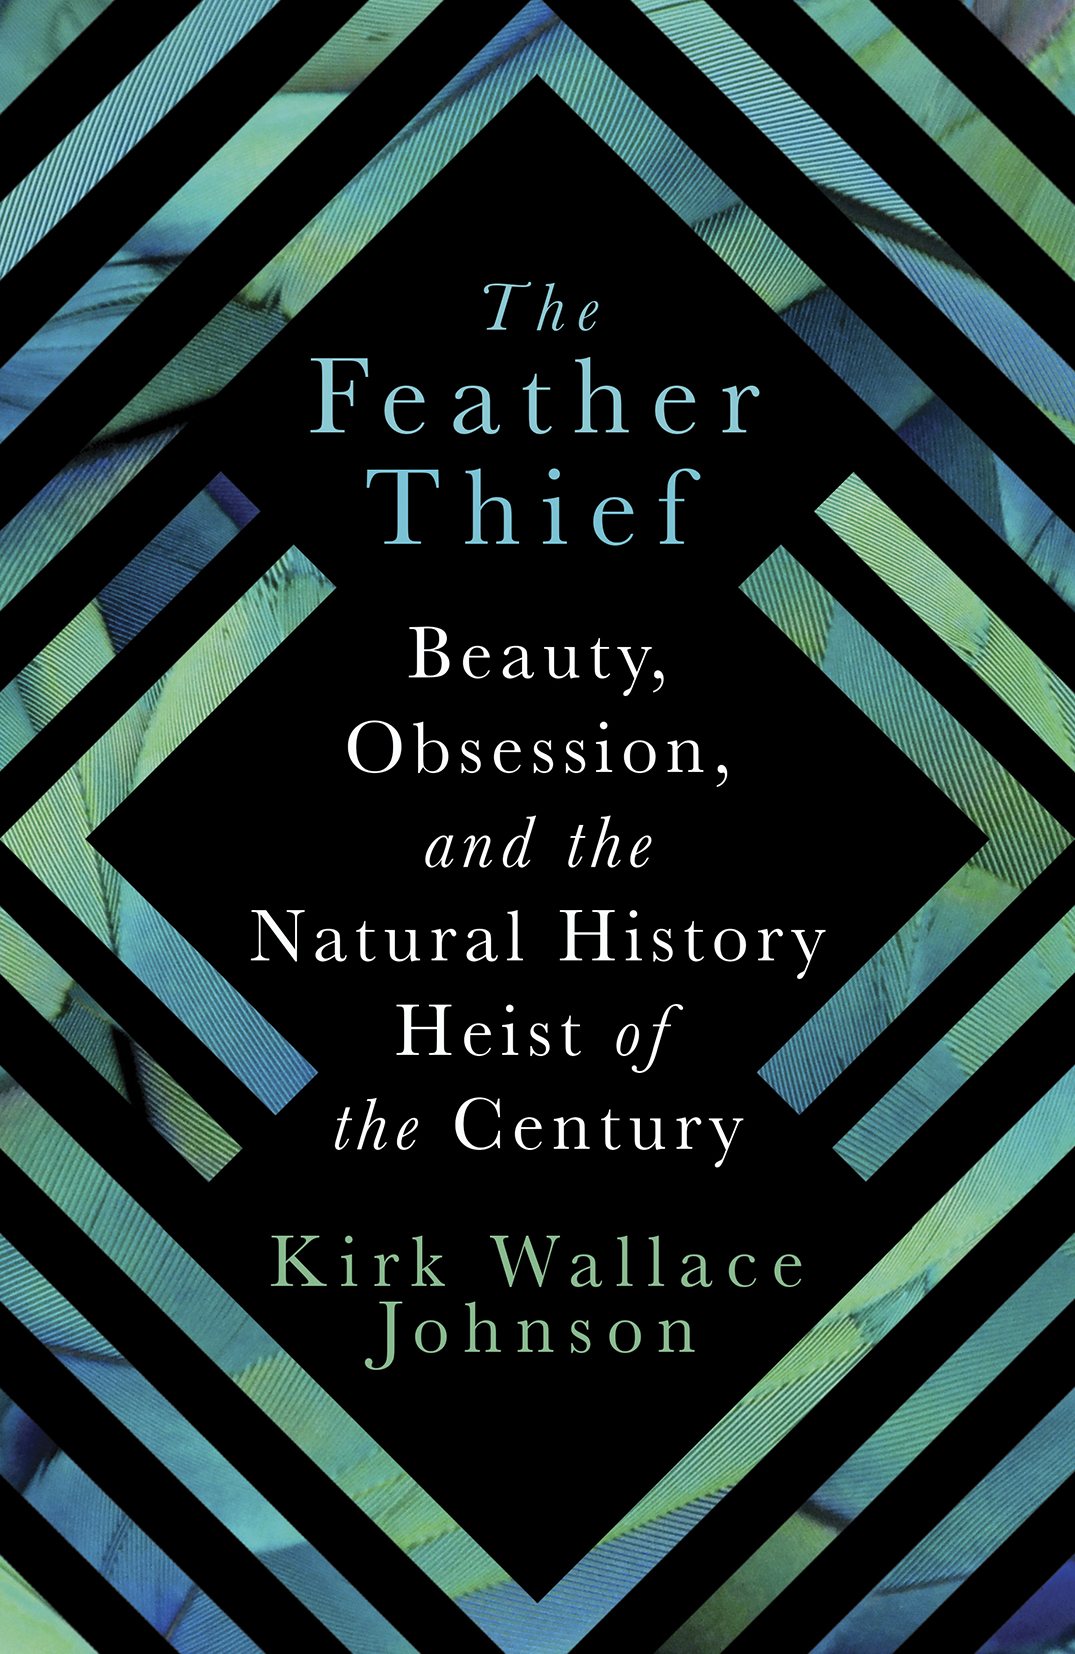 The Feather Thief 2.jpg